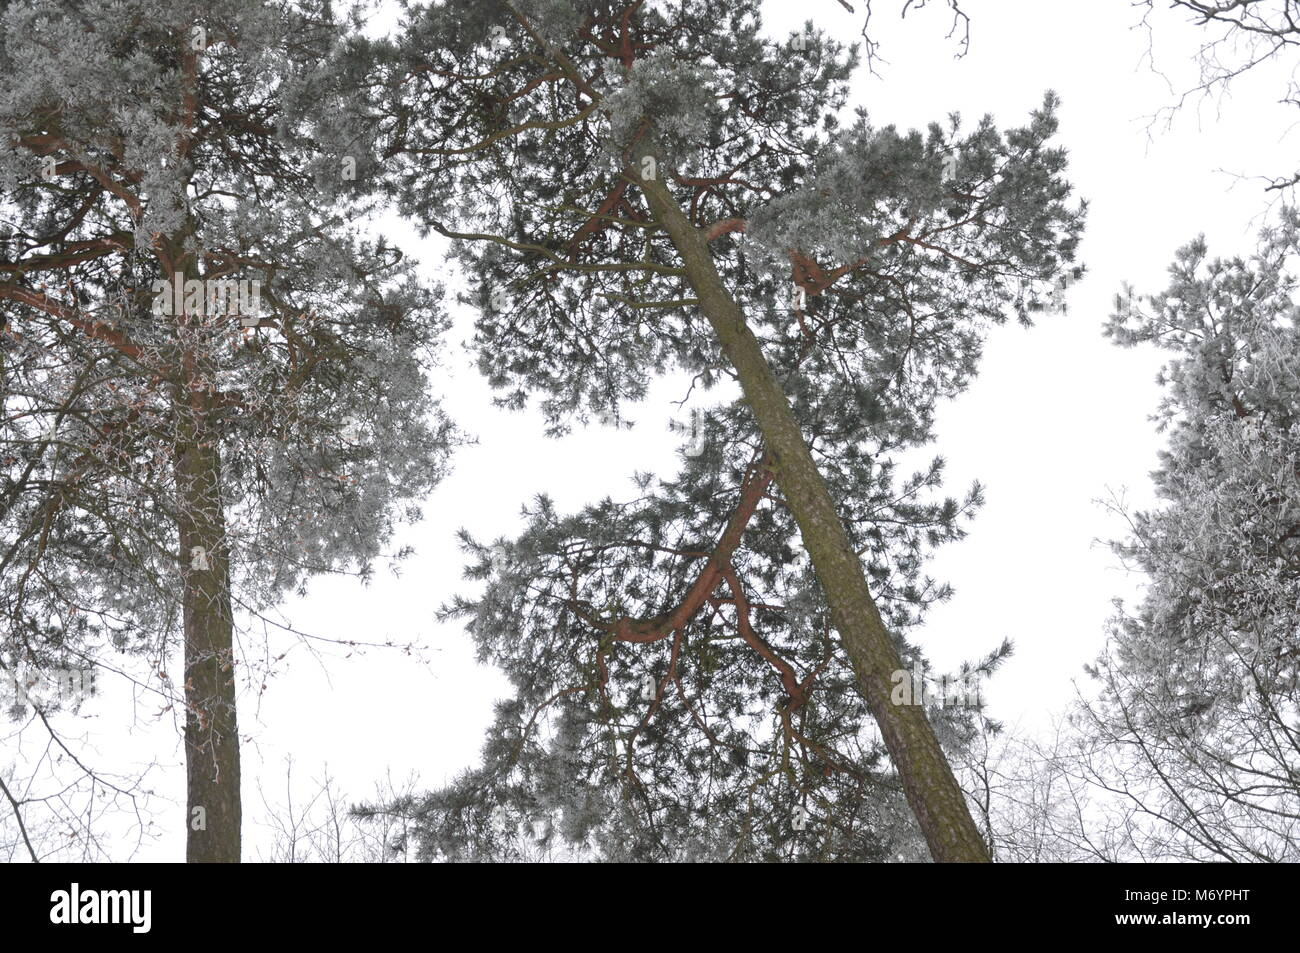 Winter in Lithuania. Forest 2018. - Stock Image